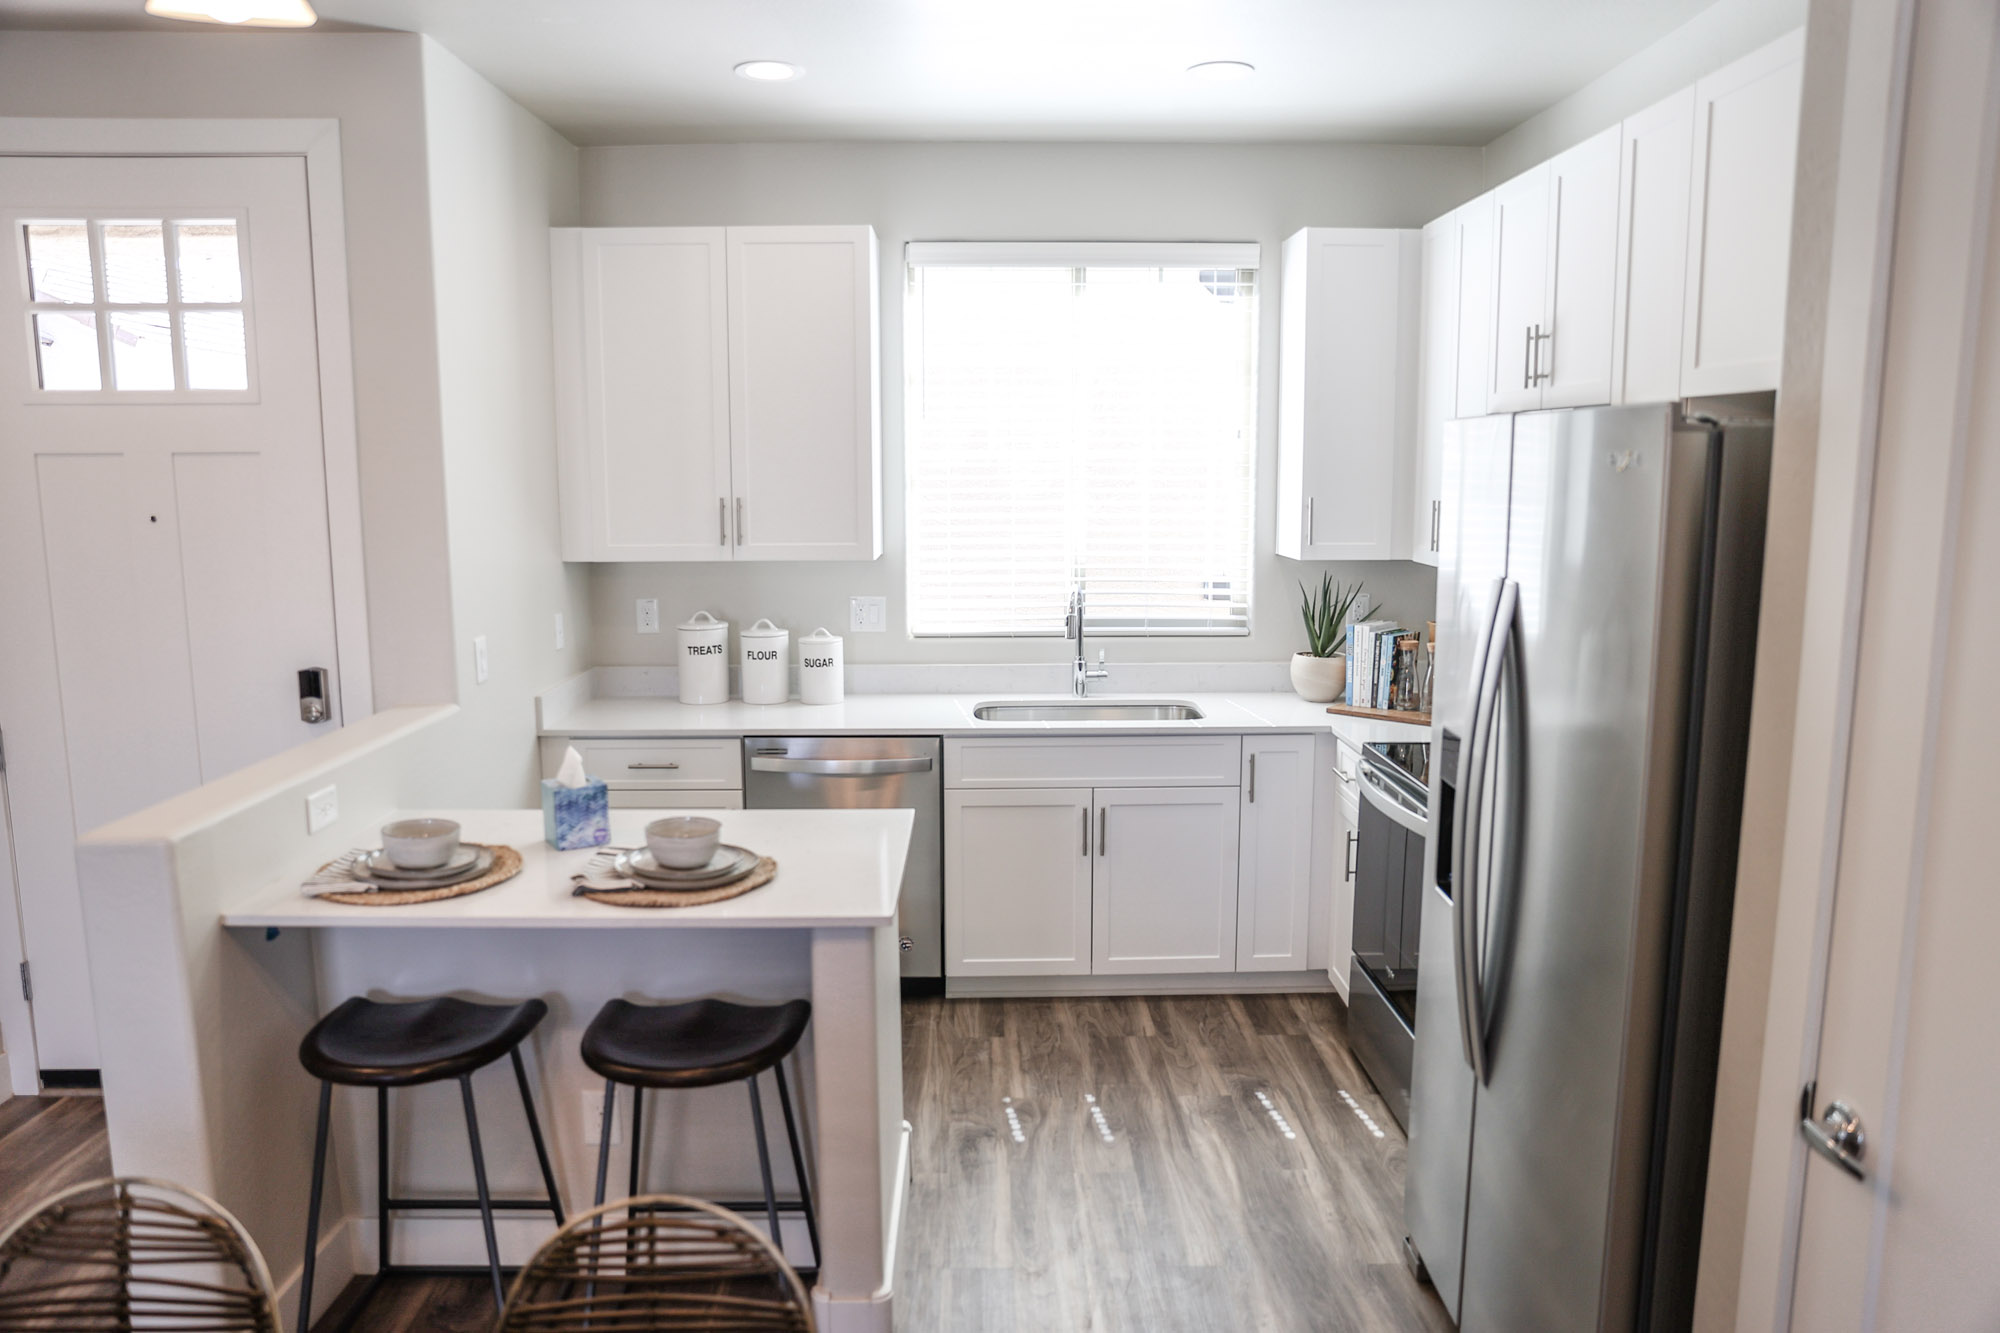 Interior Spaces at Olive Marketplace Apartments in Glendale, AZ